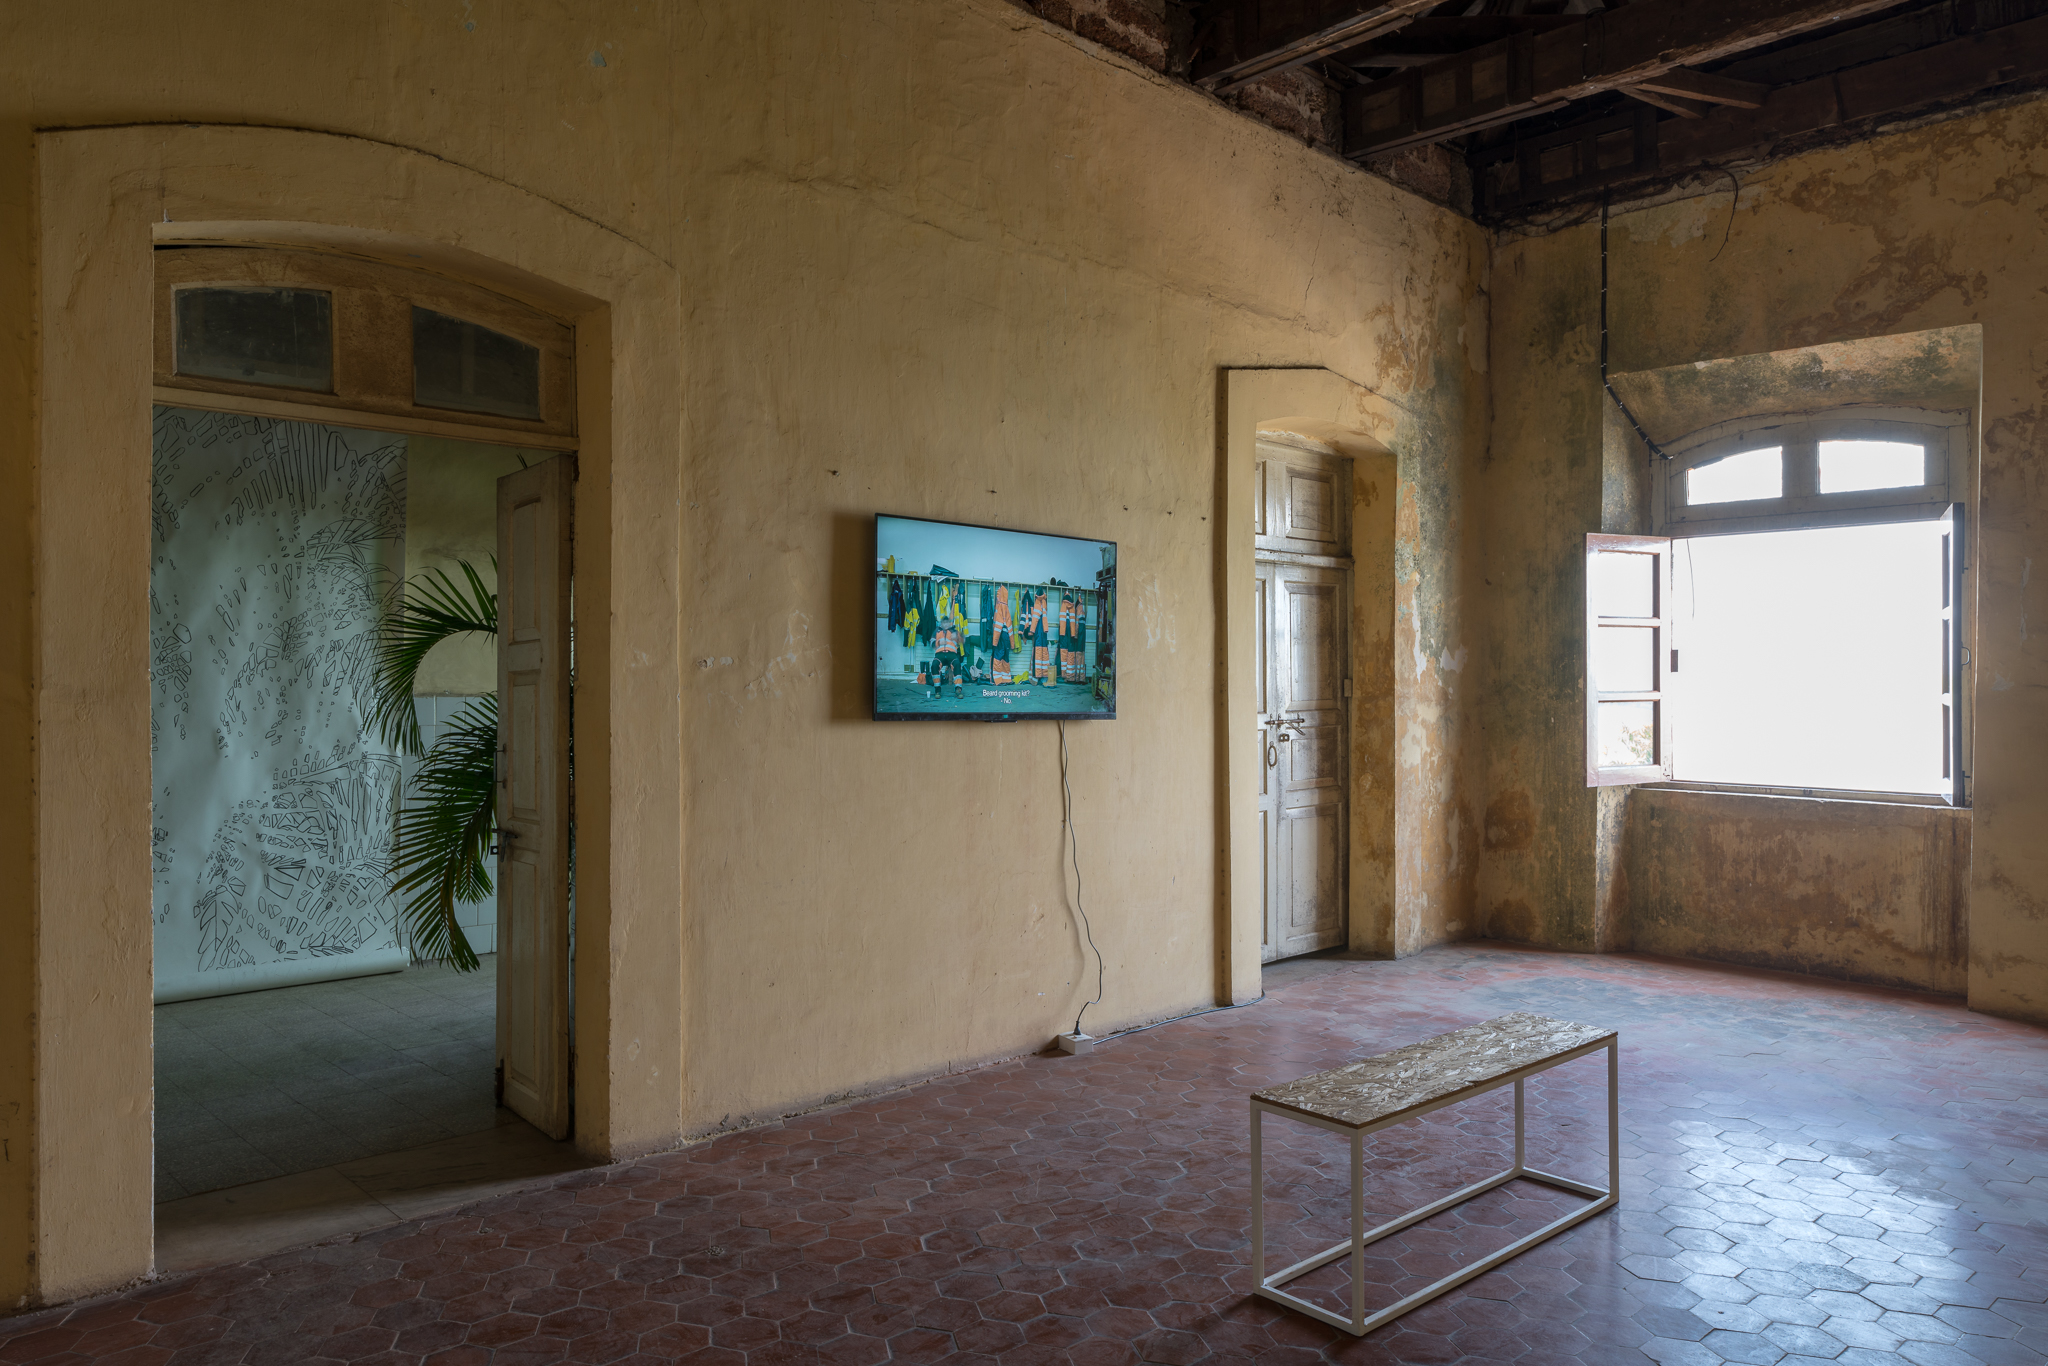 Installation view from ´In Line of Flight´ at Serendipity art festival, Goa, India in 2018.